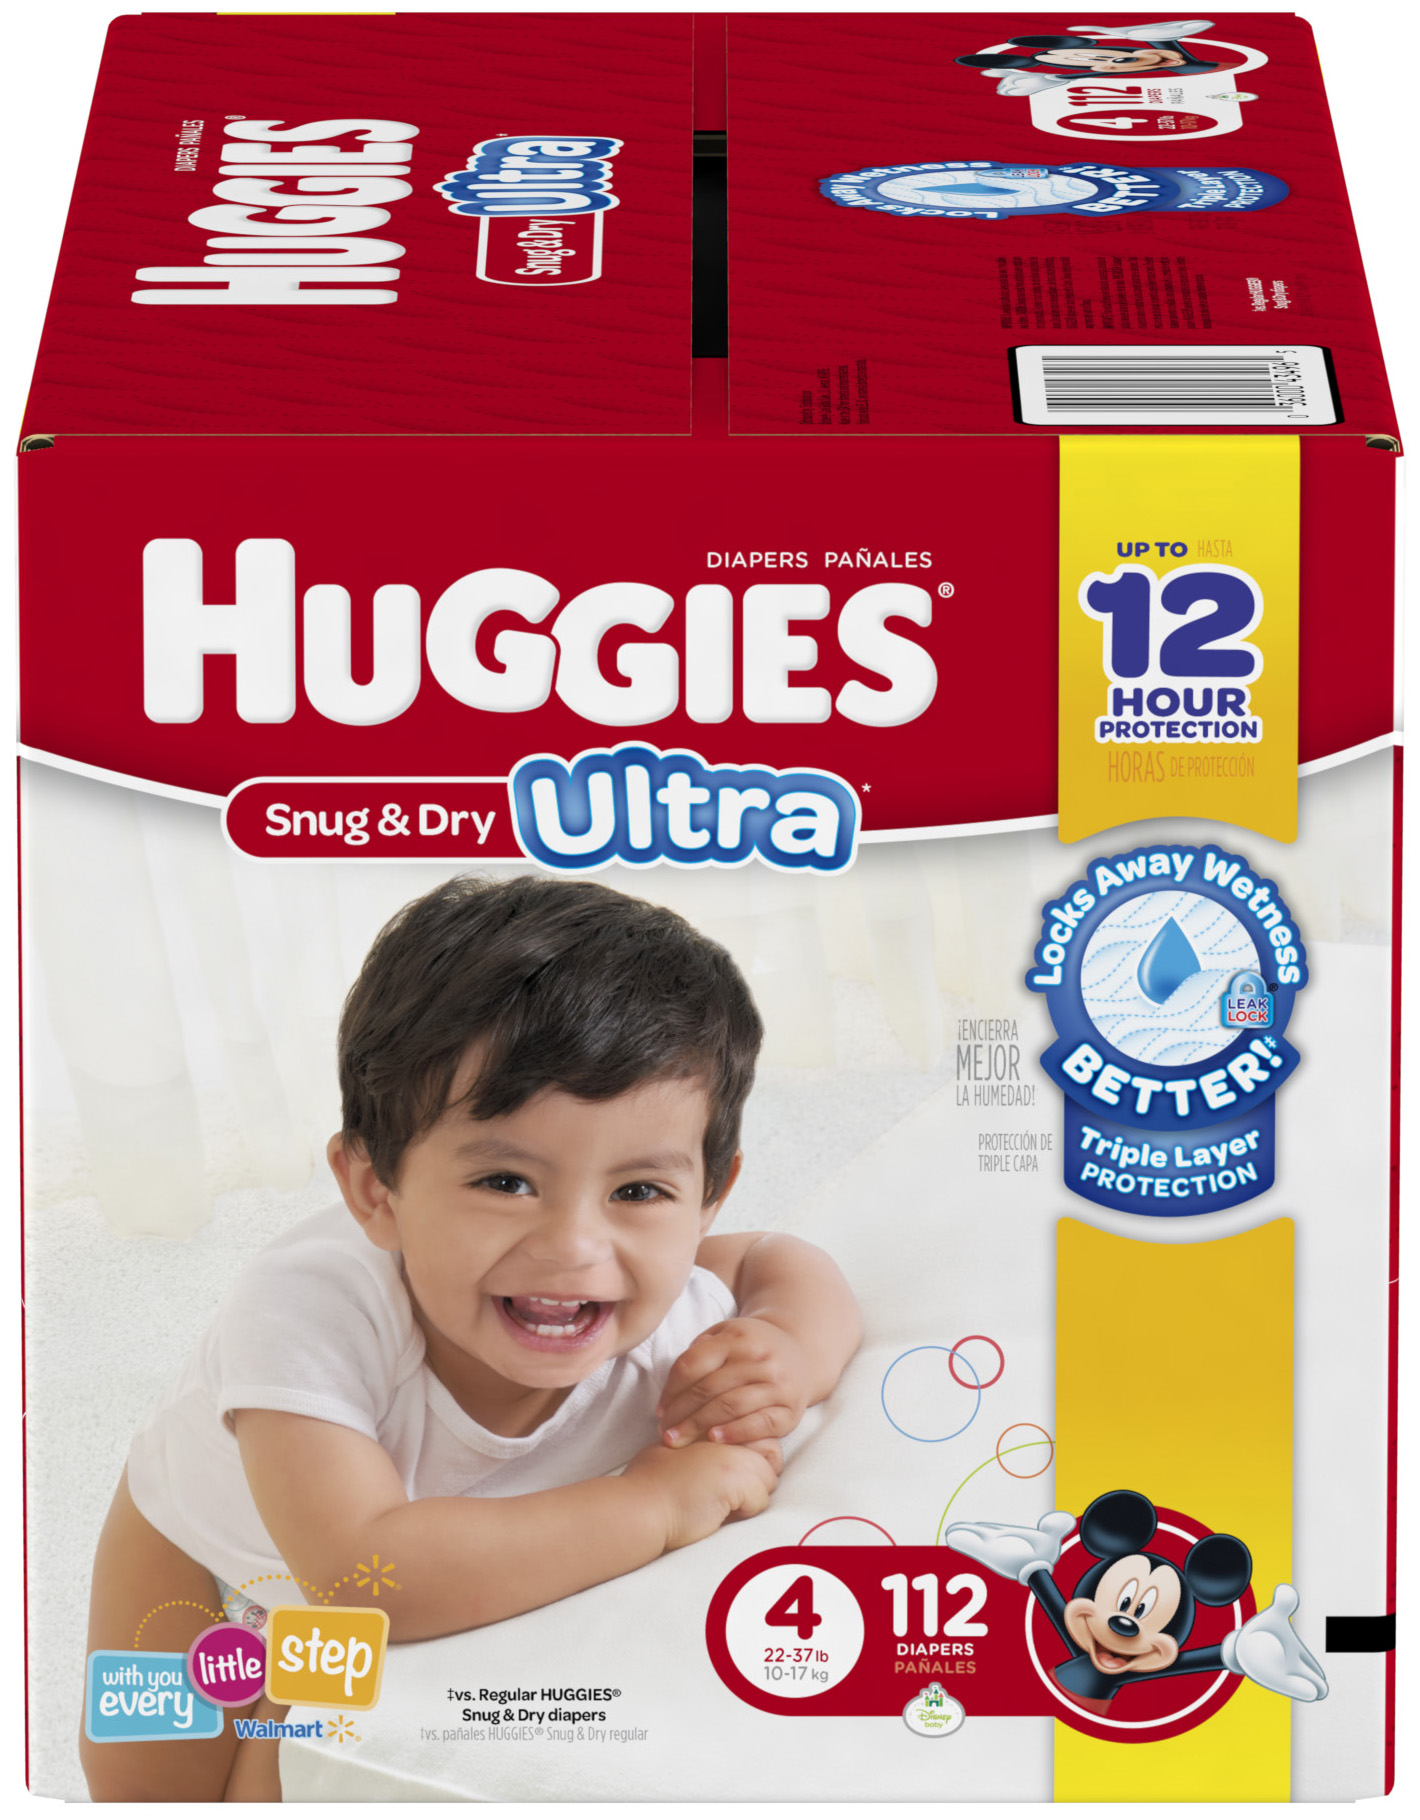 Walmart: Get a FREE pack of Huggies Diapers after rebate!